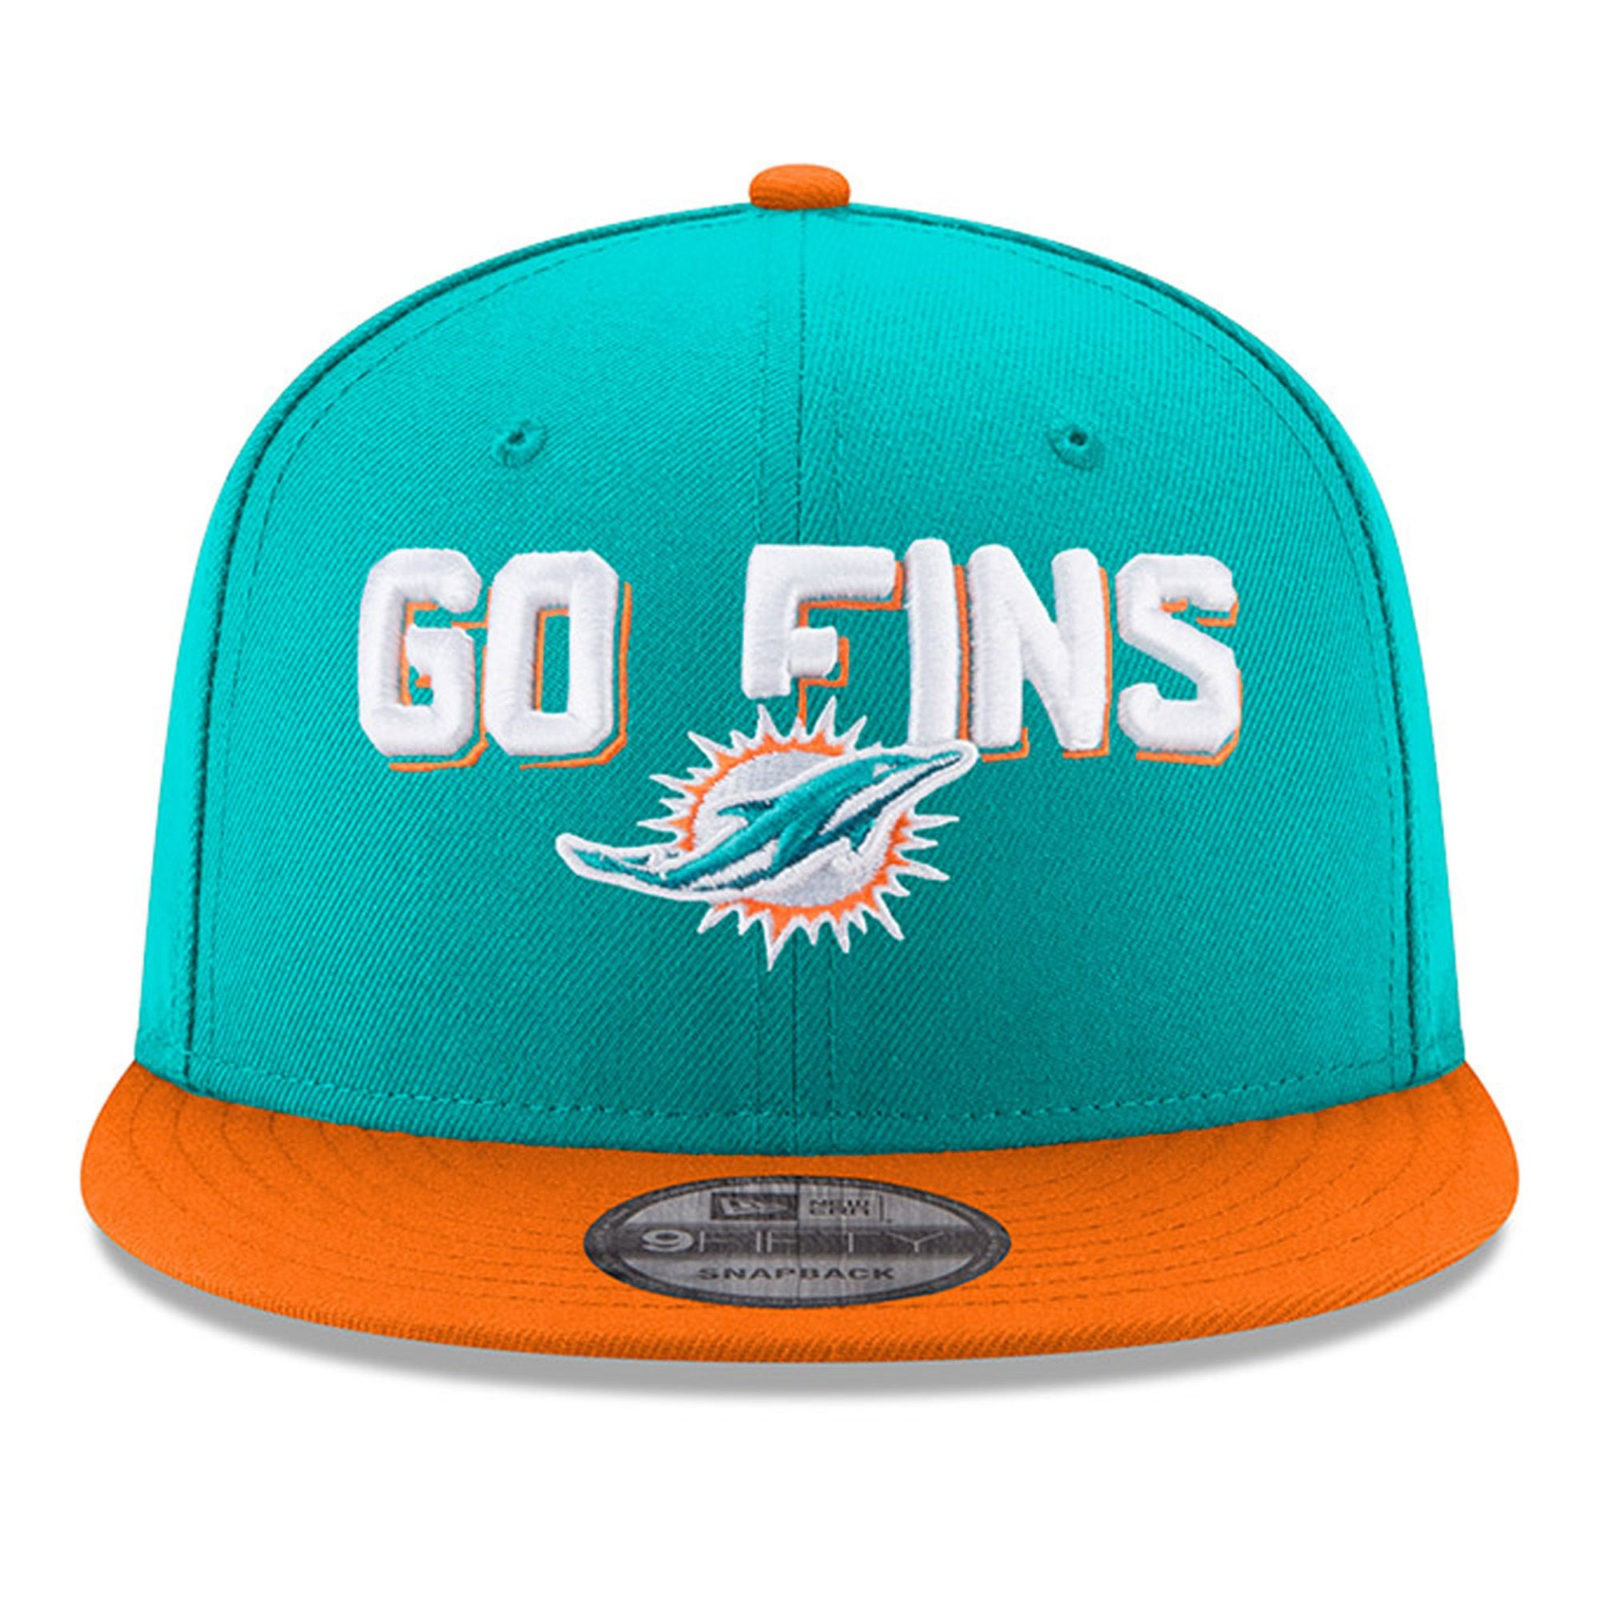 c4e1a02b80212e Miami Dolphins New Era 2018 NFL Draft Spotlight 9Fifty Snapback Hat – Aqua